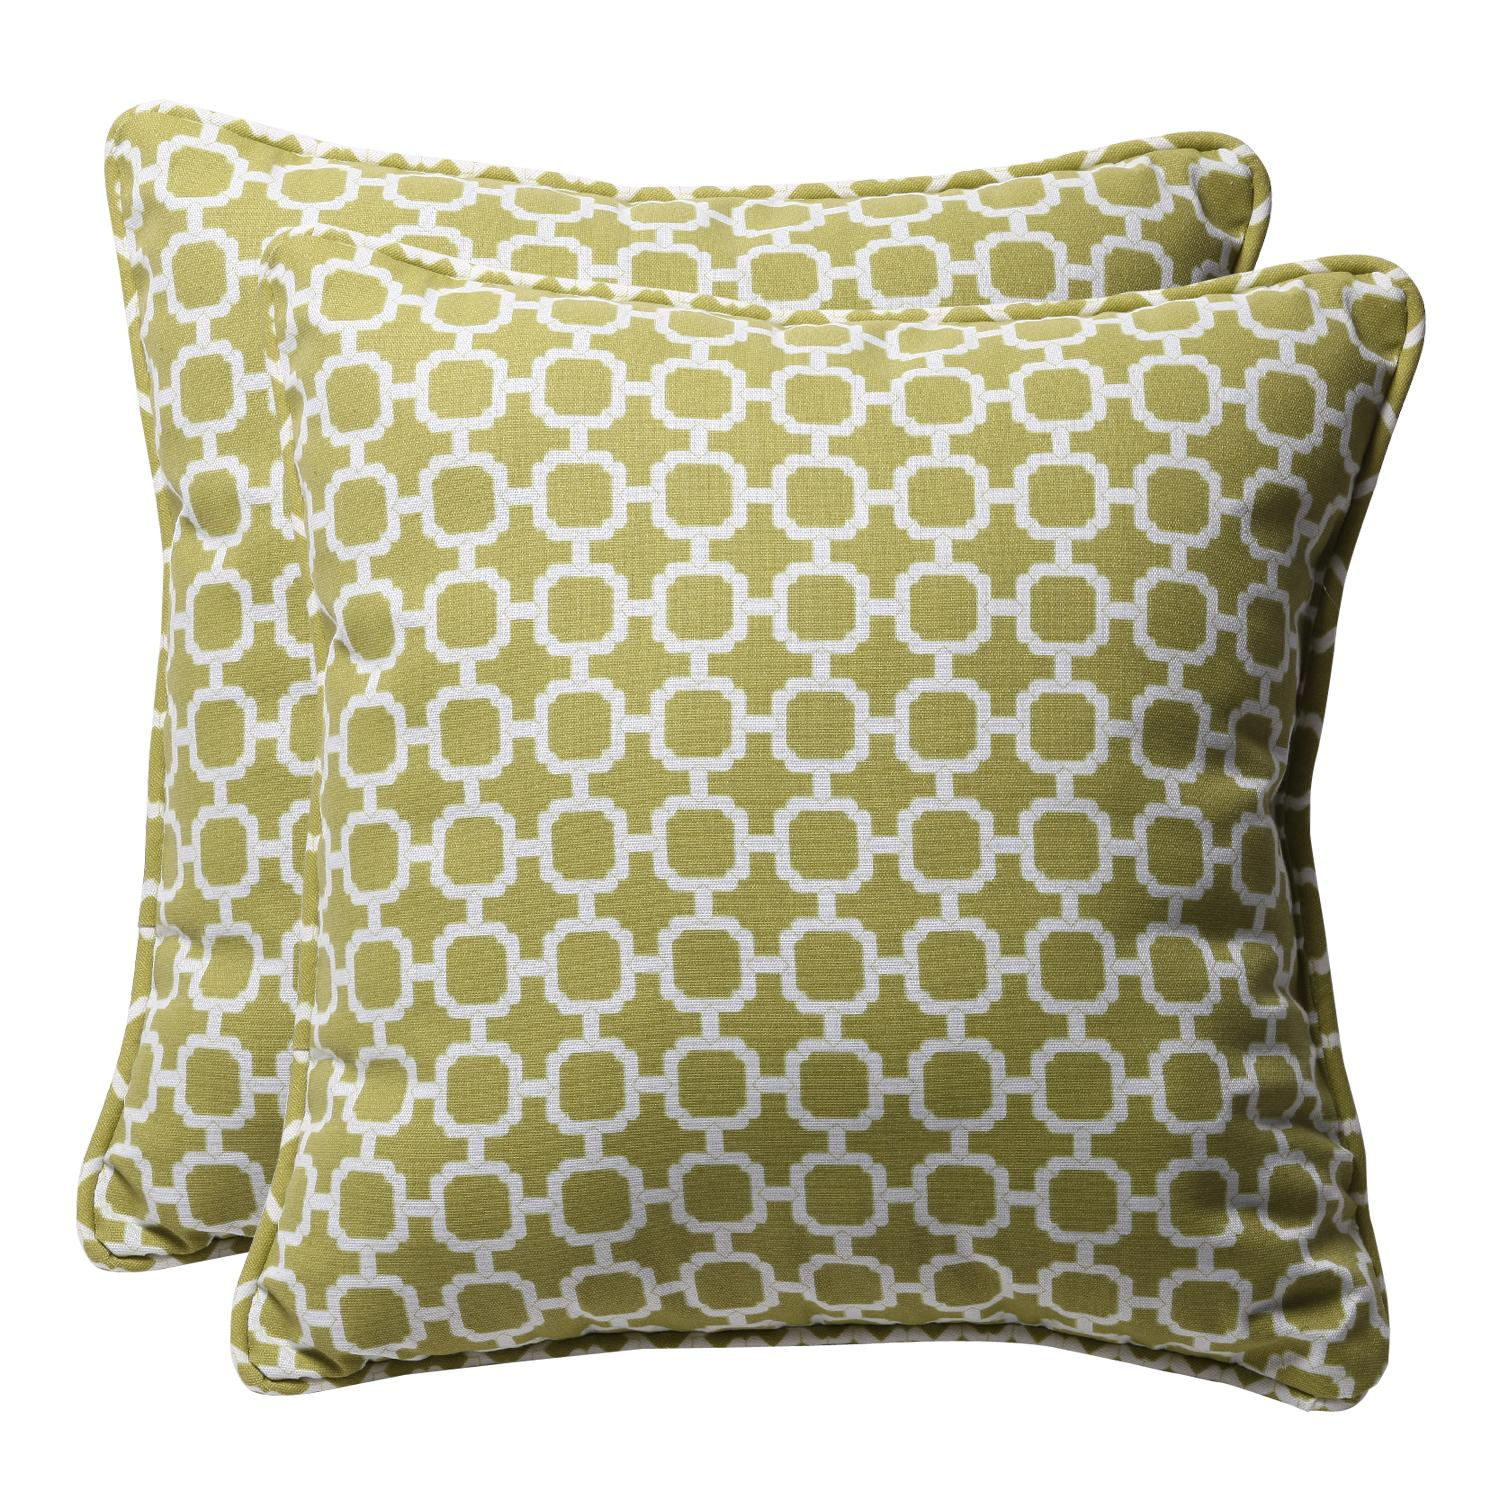 Pack of 2 Eco-Friendly Recycled Lime Mosaic Square Outdoor Throw Pillows 18.5""